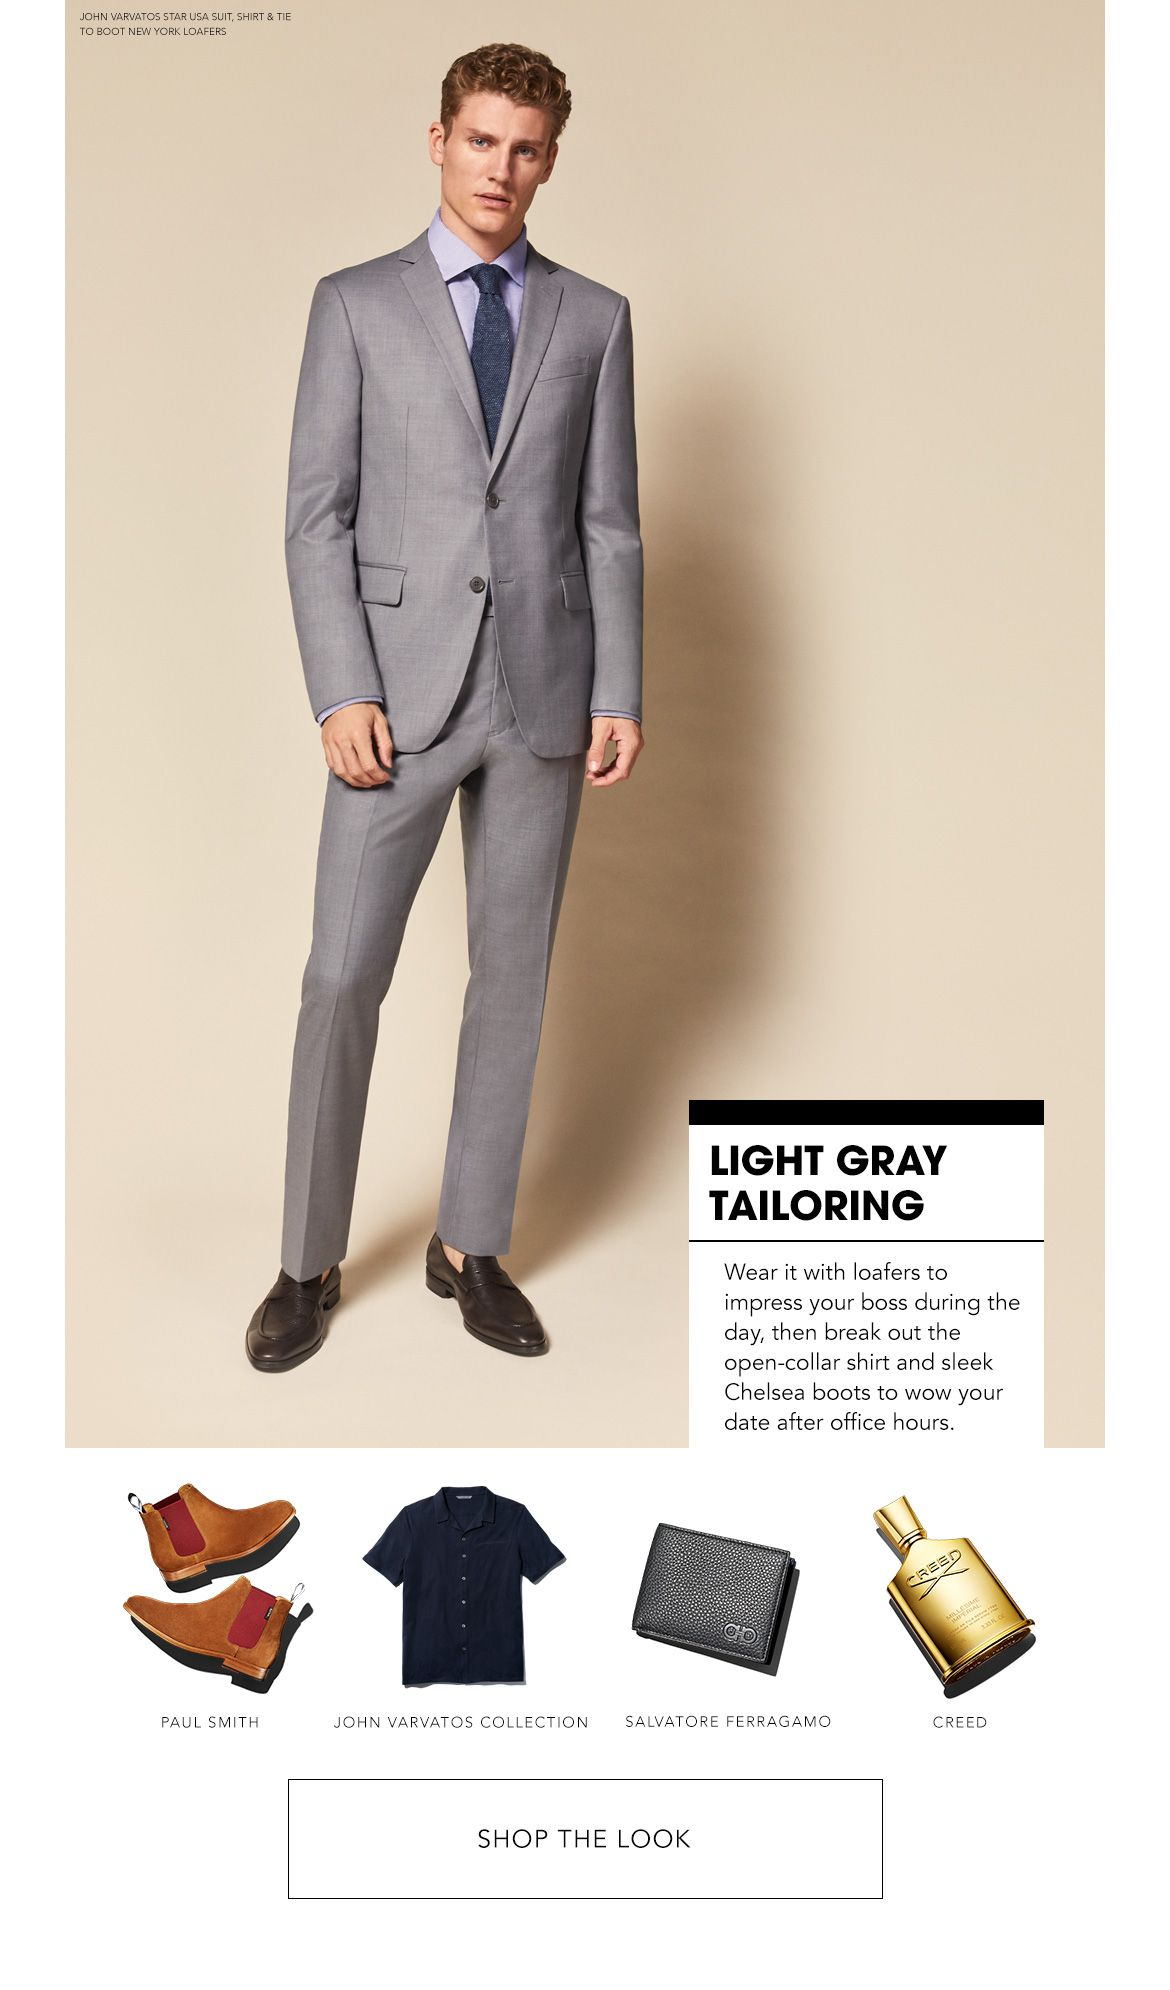 Styled for Light Gray Tailoring